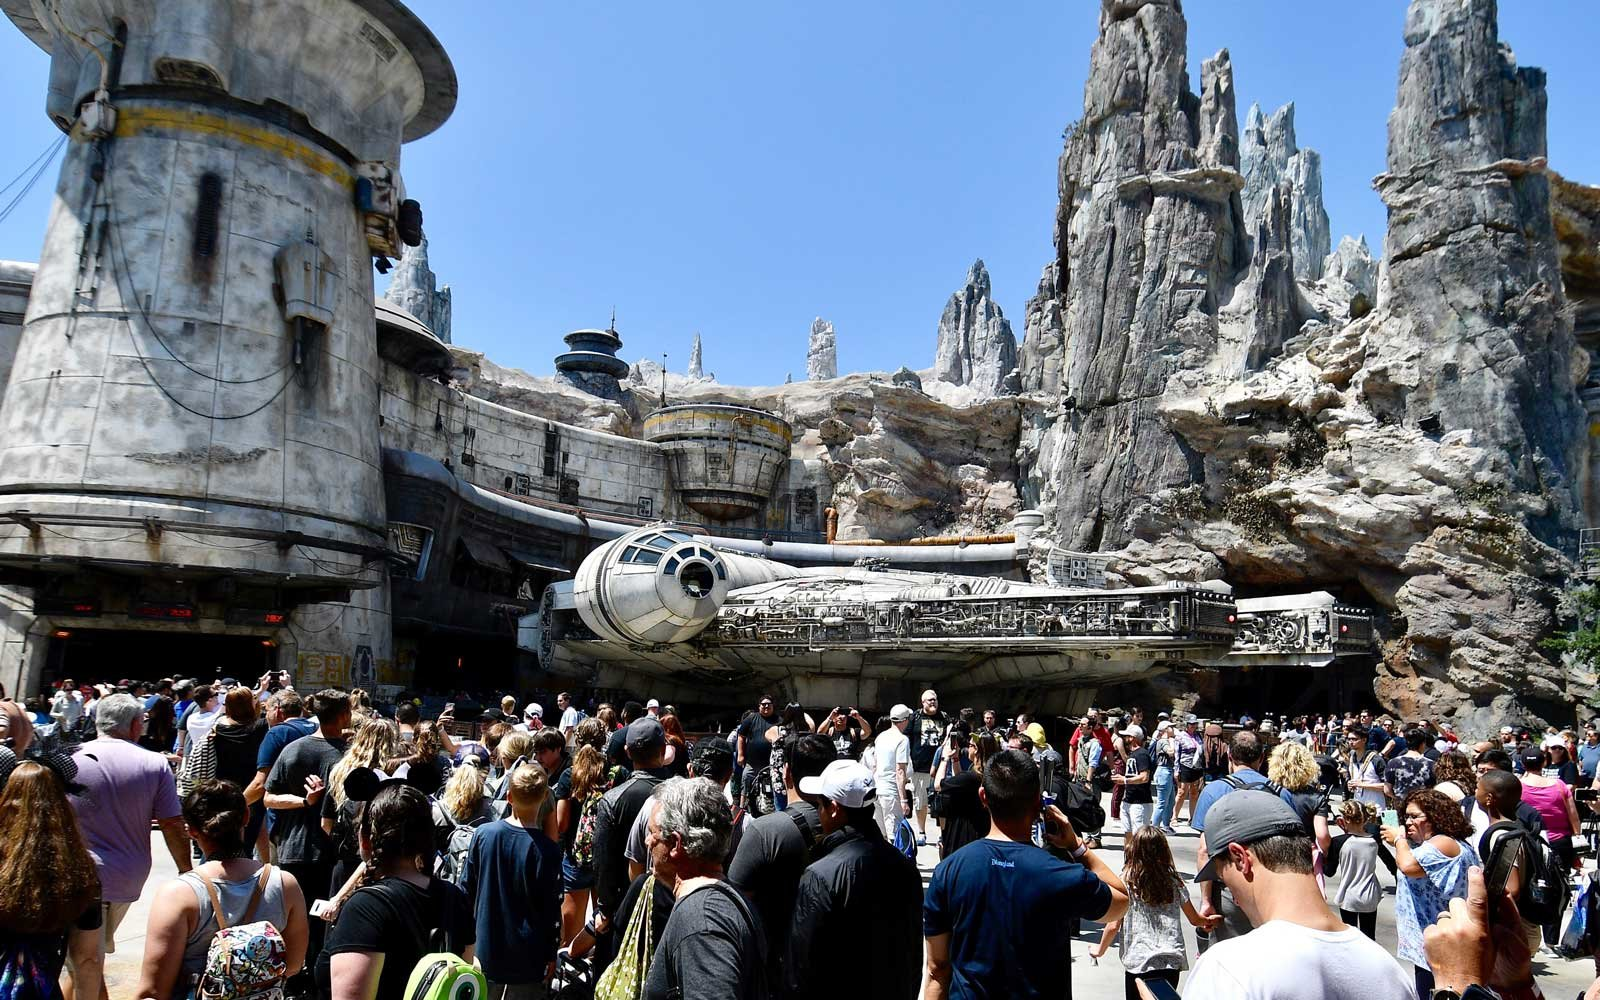 Visitors to Black Spire Outpost wait in line for the Millennium Falcon: Smugglers Run ride